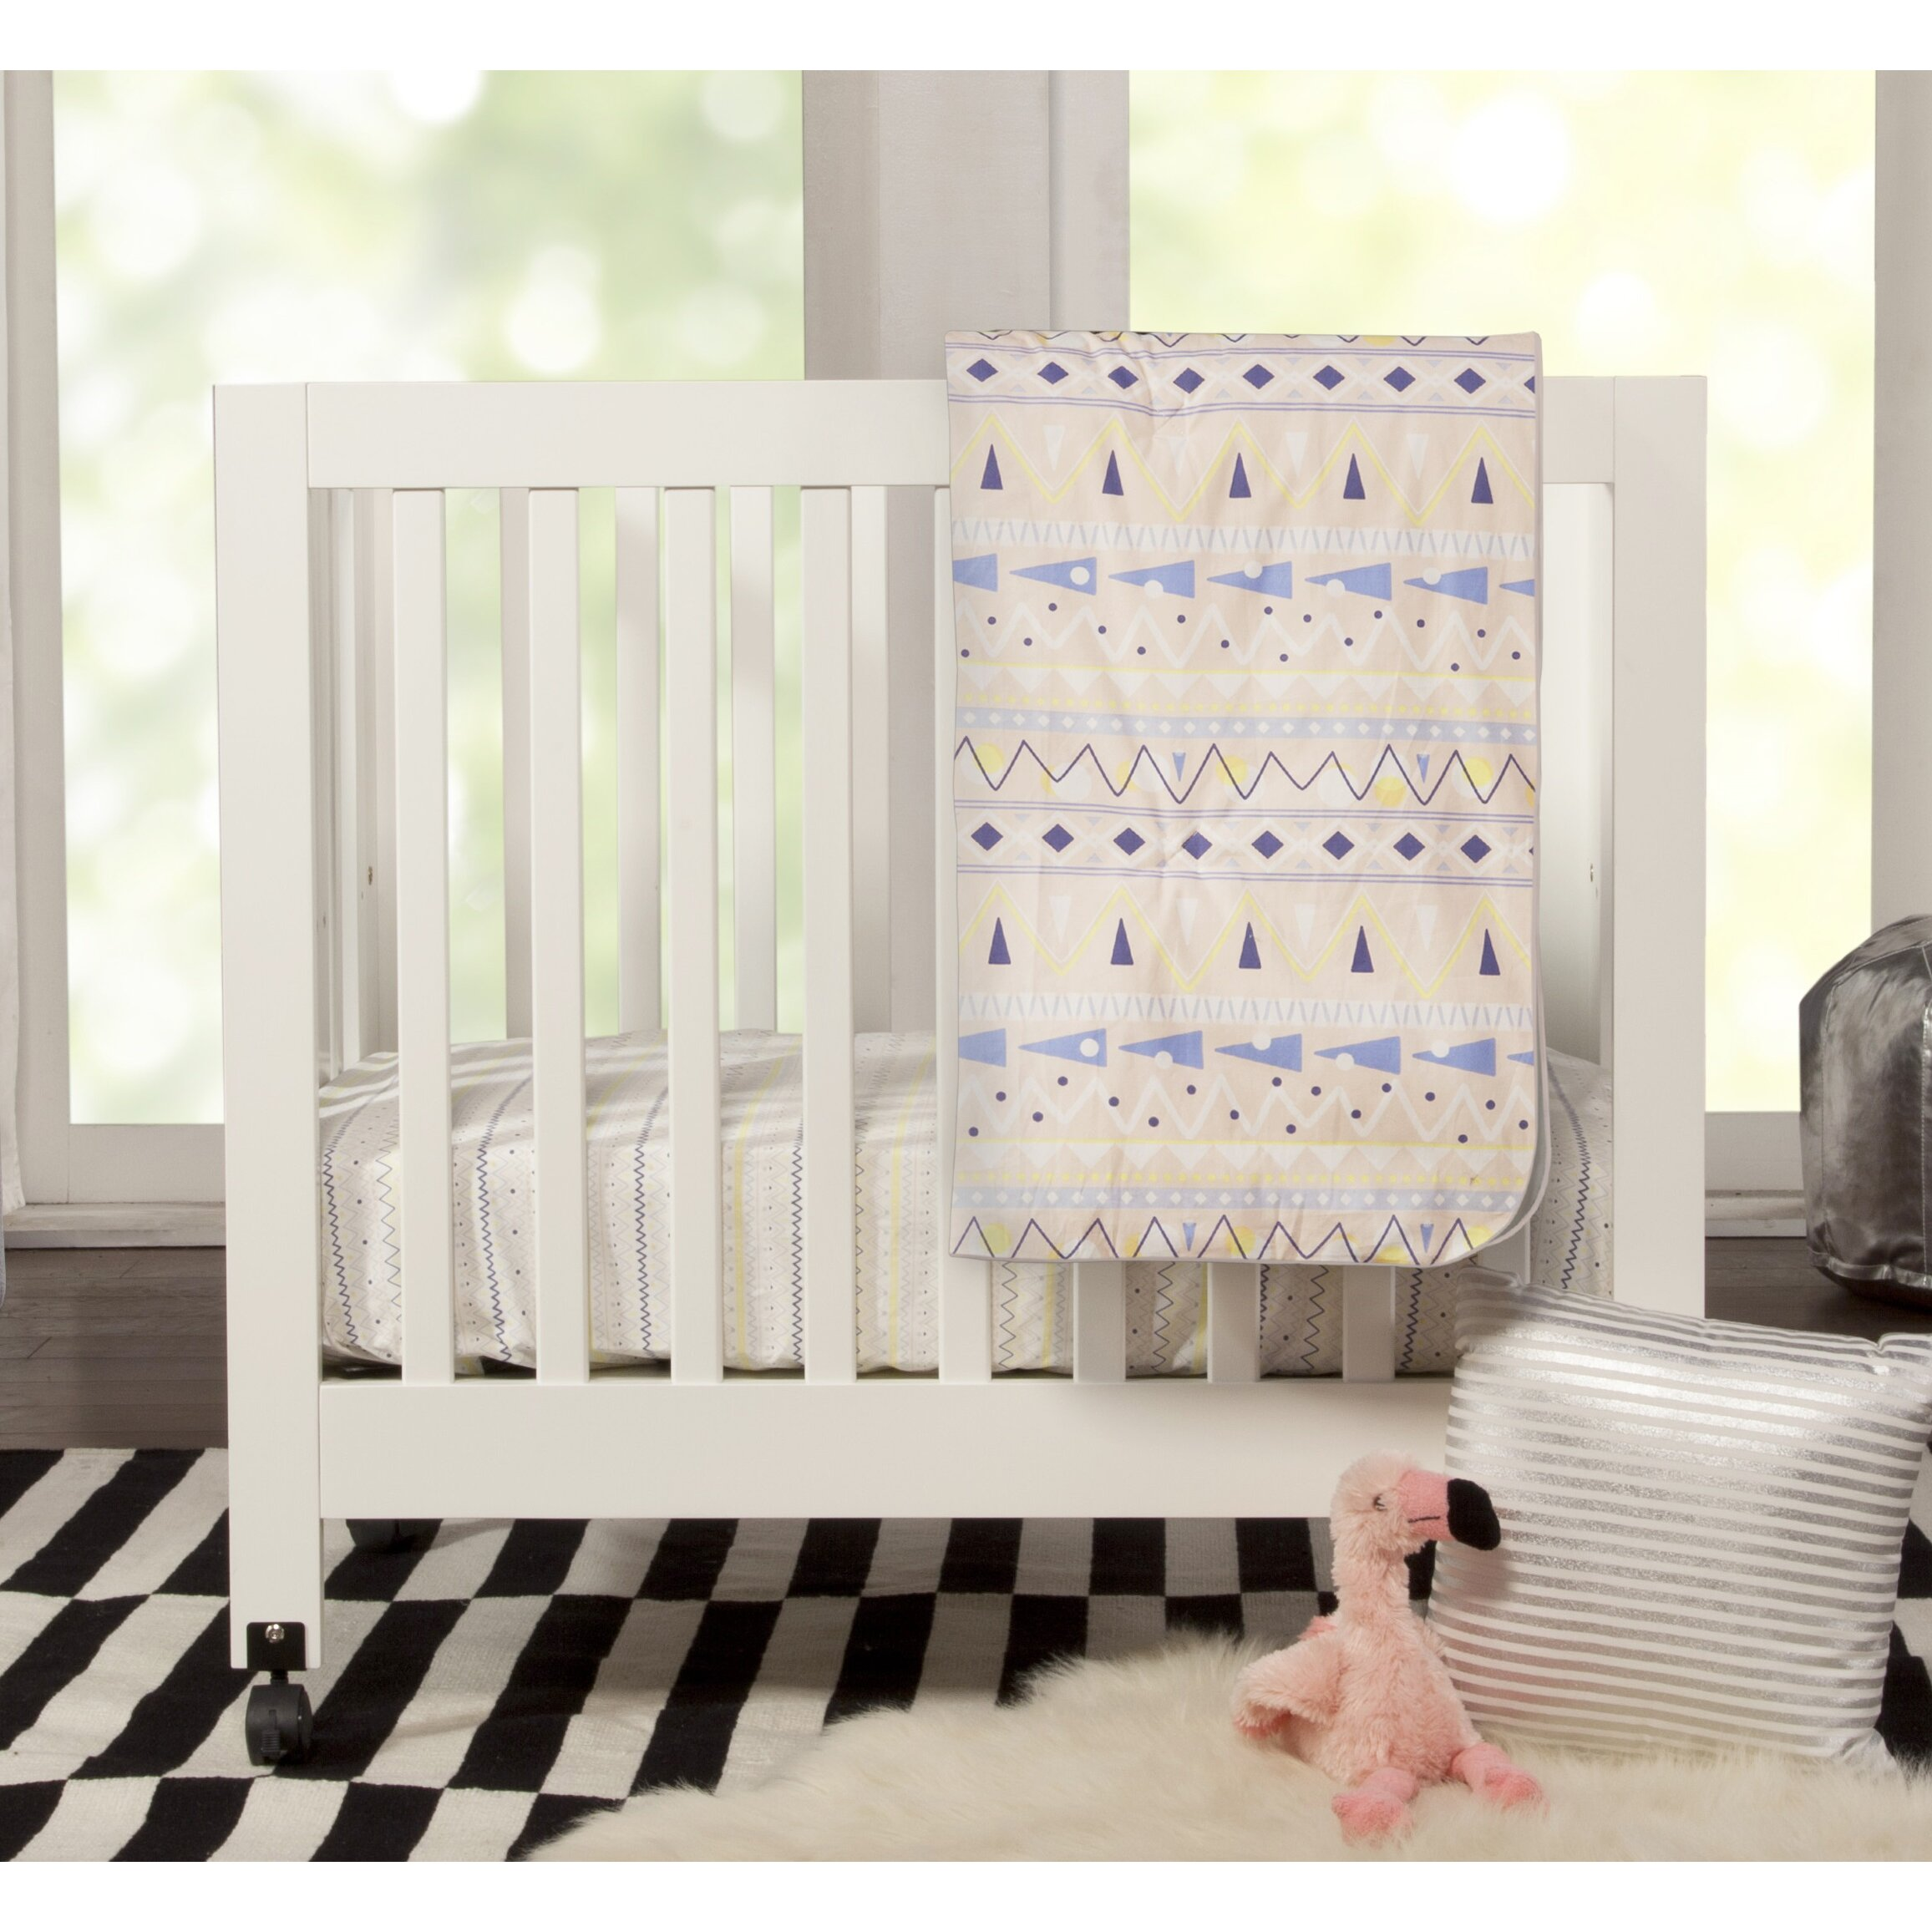 Used crib for sale toronto - Babyletto Origami Portable Mini Crib